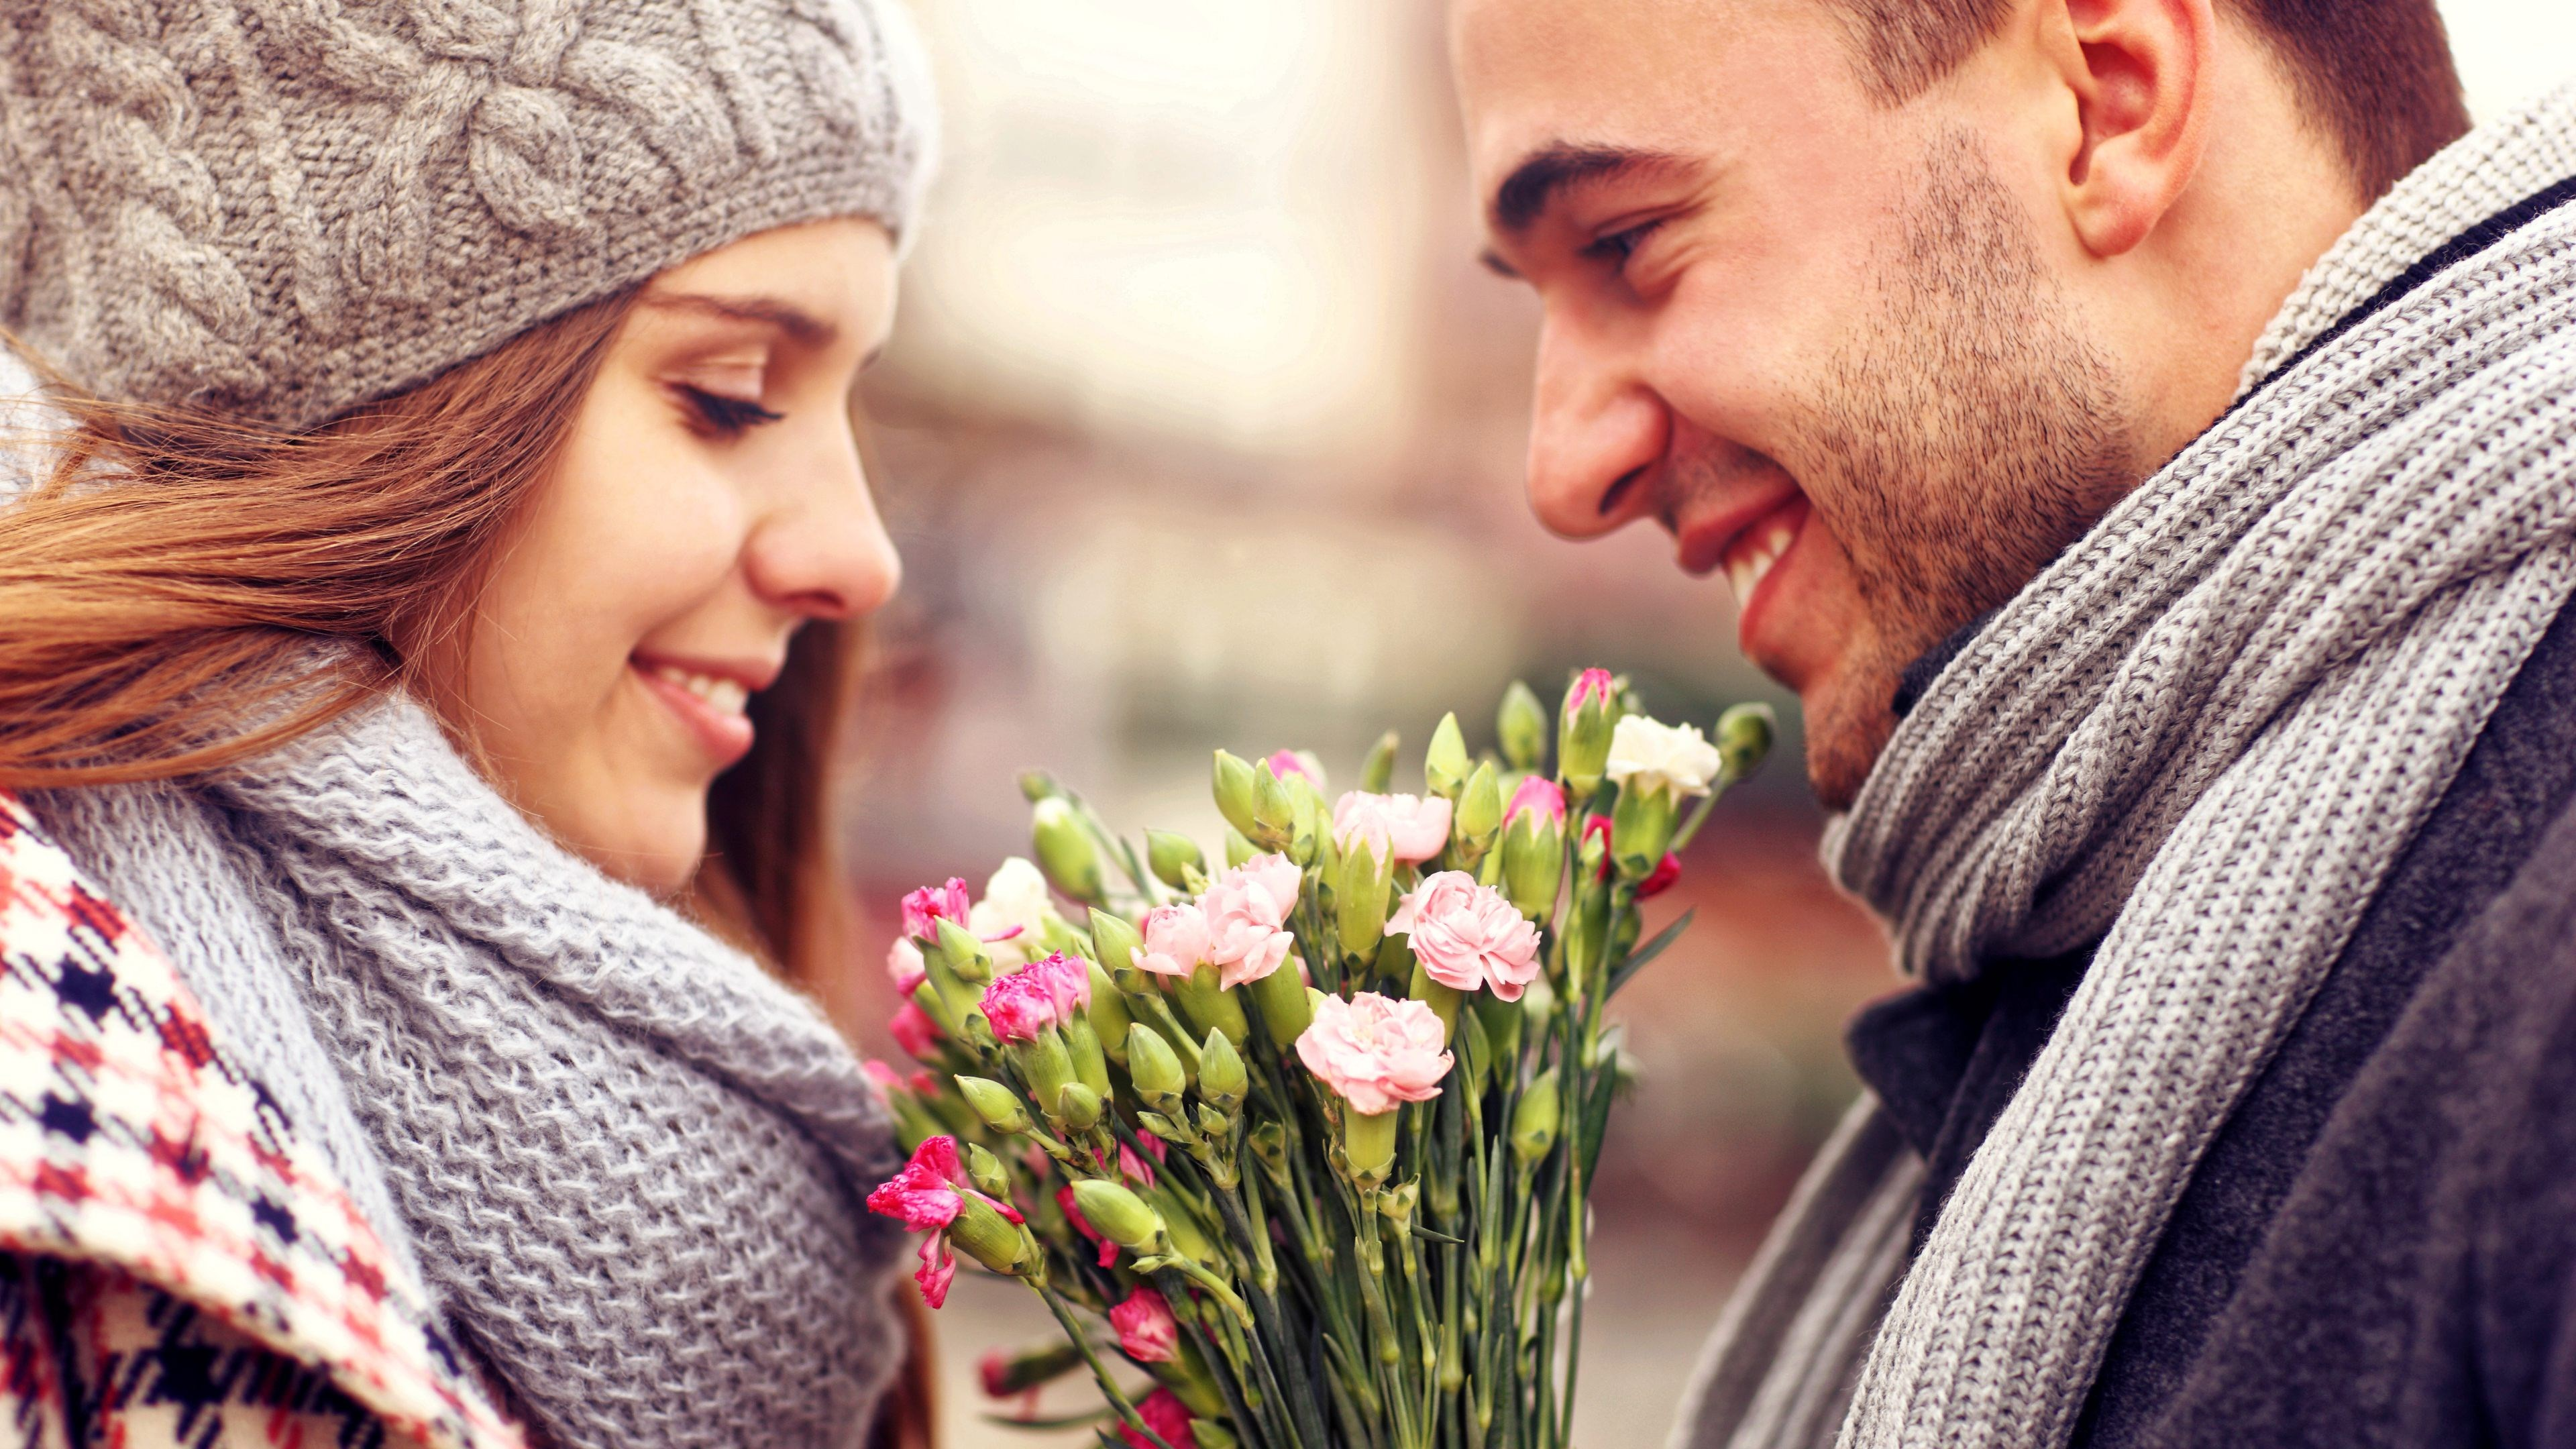 Simple Wallpaper High Quality Couple - 80072-happy-couple-ultra-hd-4k-ultra-hd-wallpaper  Best Photo Reference_464811.jpg